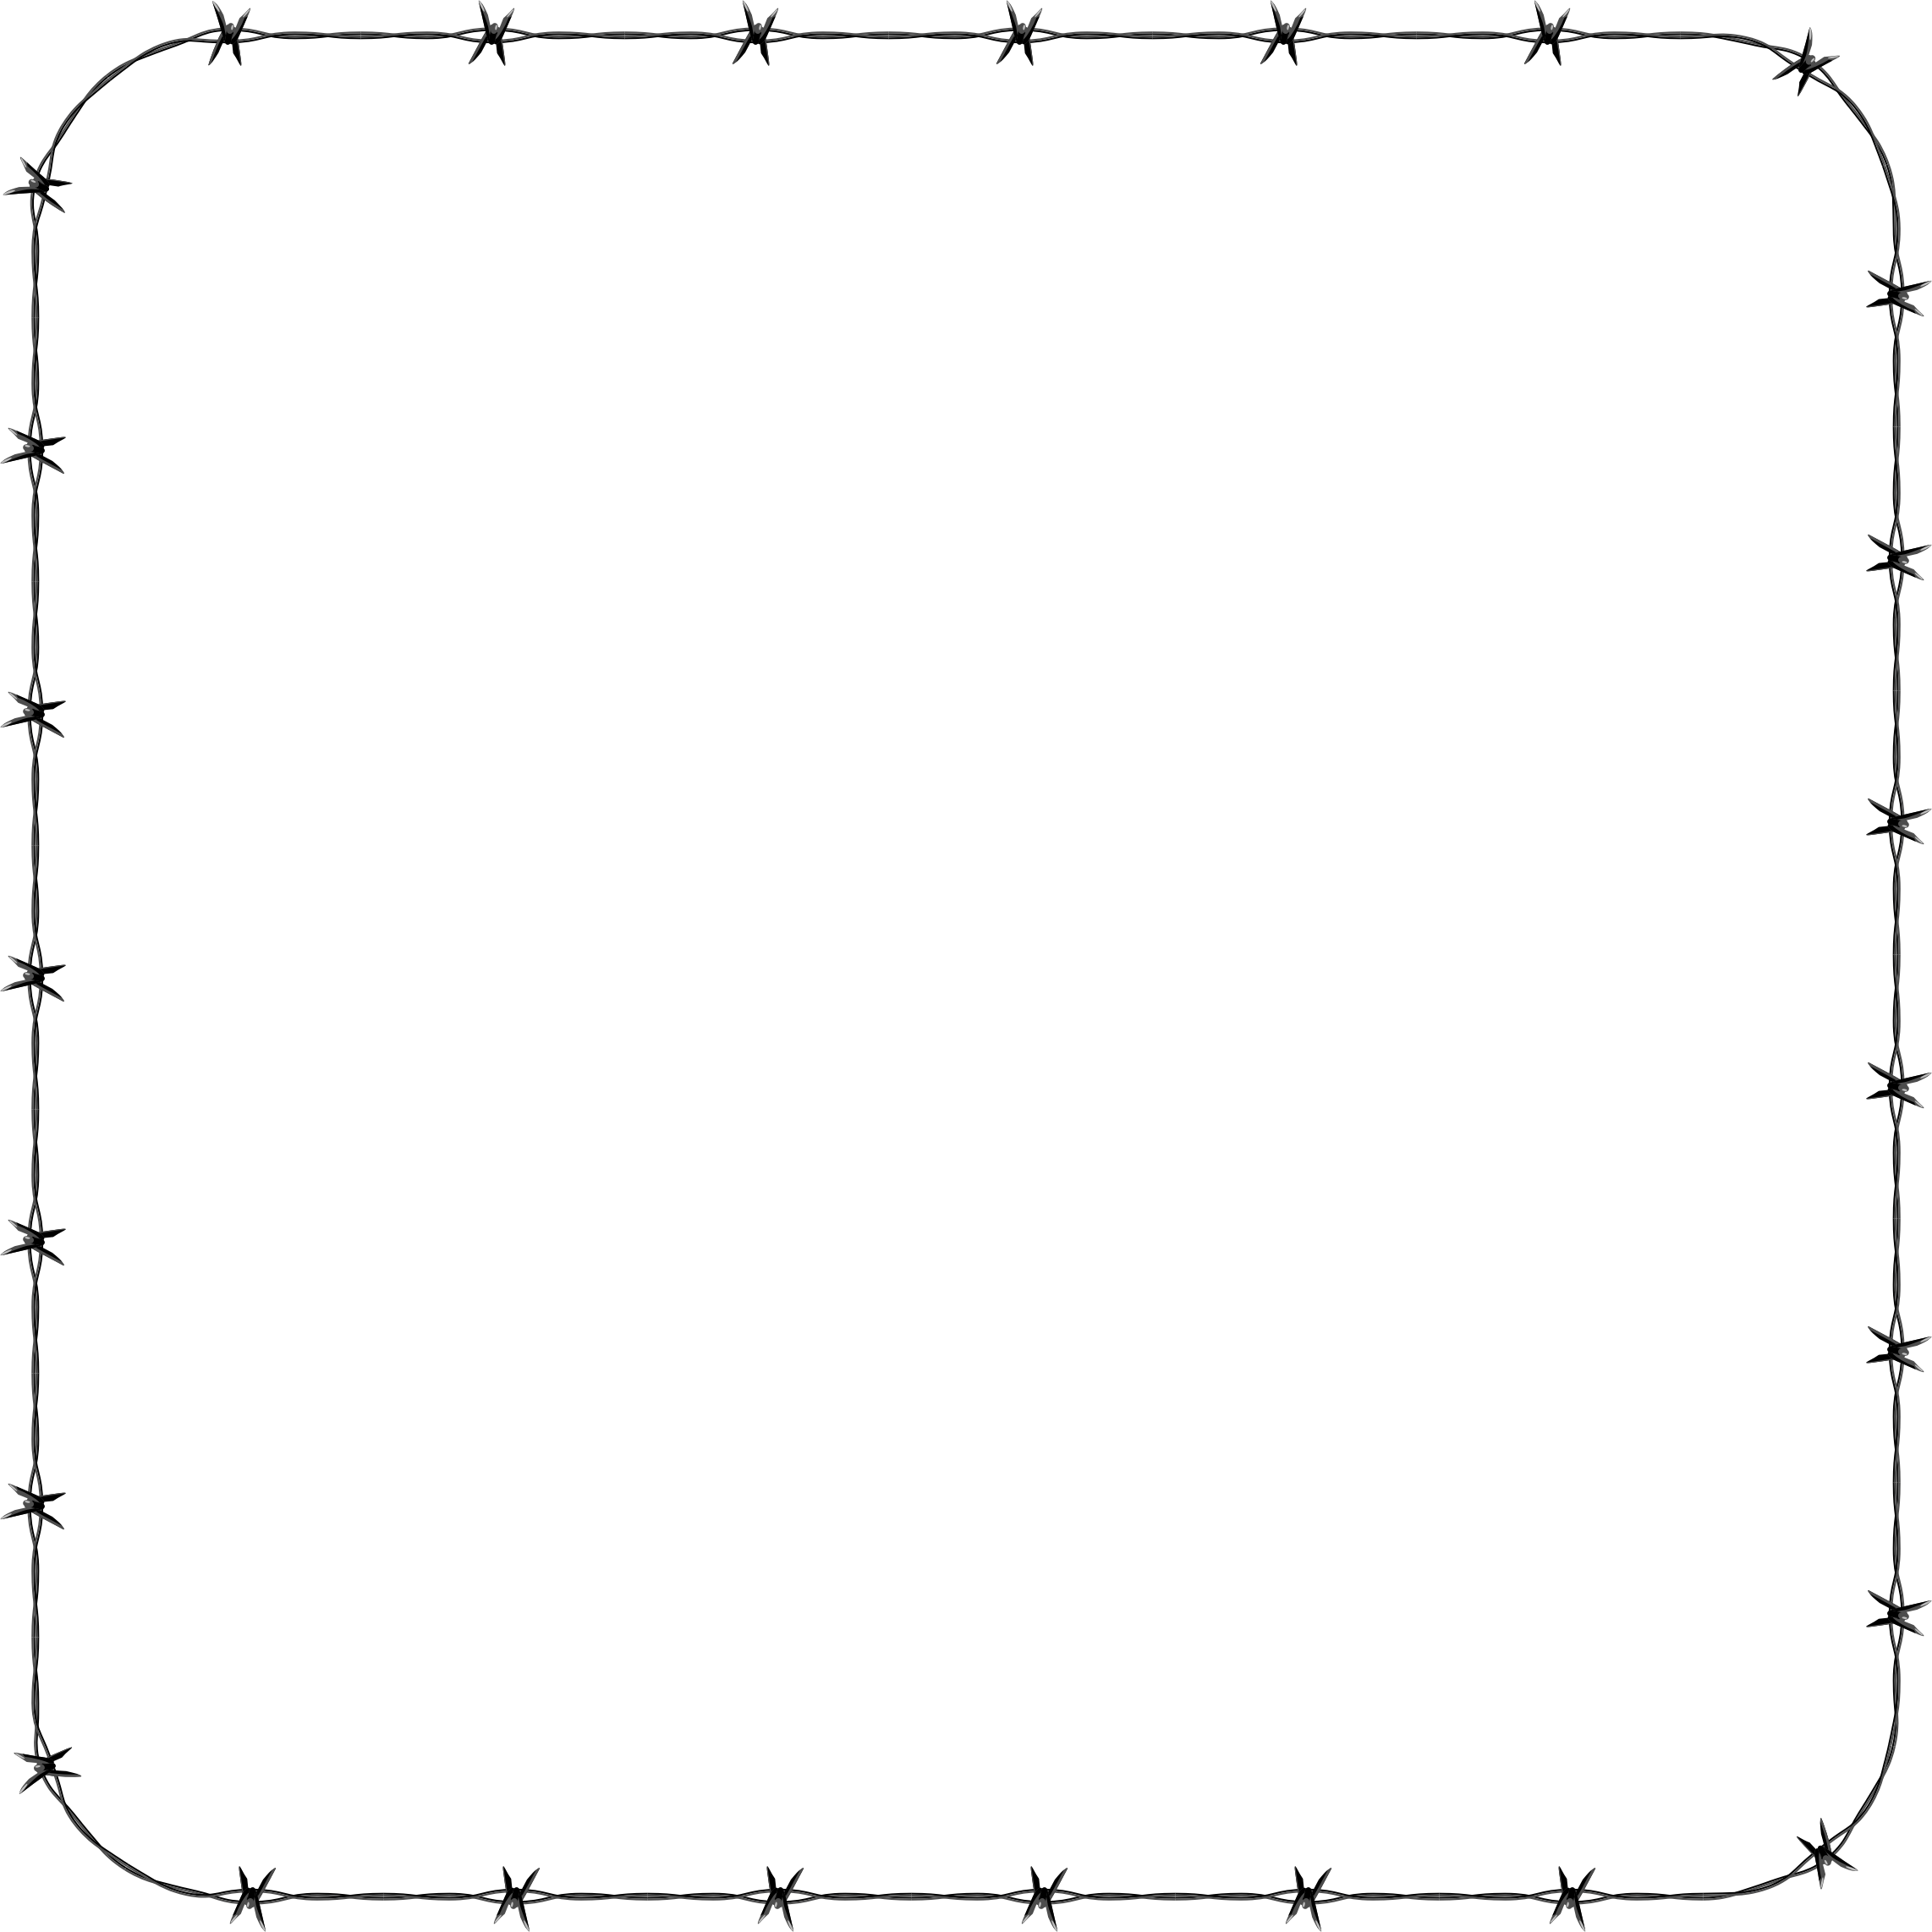 Barbed wire border png. Rounded square frame icons